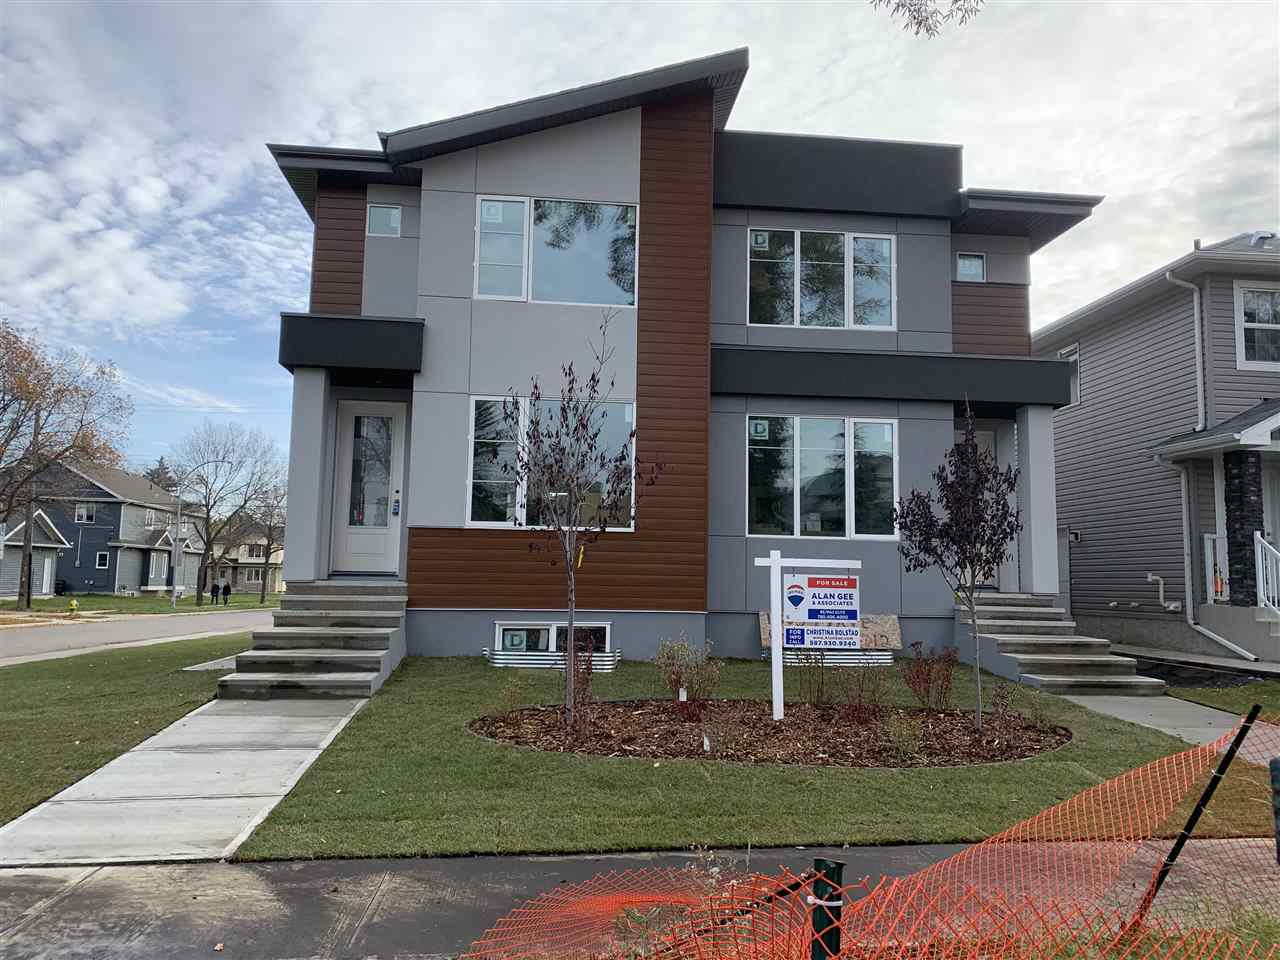 Main Photo: 11305 79 Avenue in Edmonton: Zone 15 House Half Duplex for sale : MLS®# E4207908